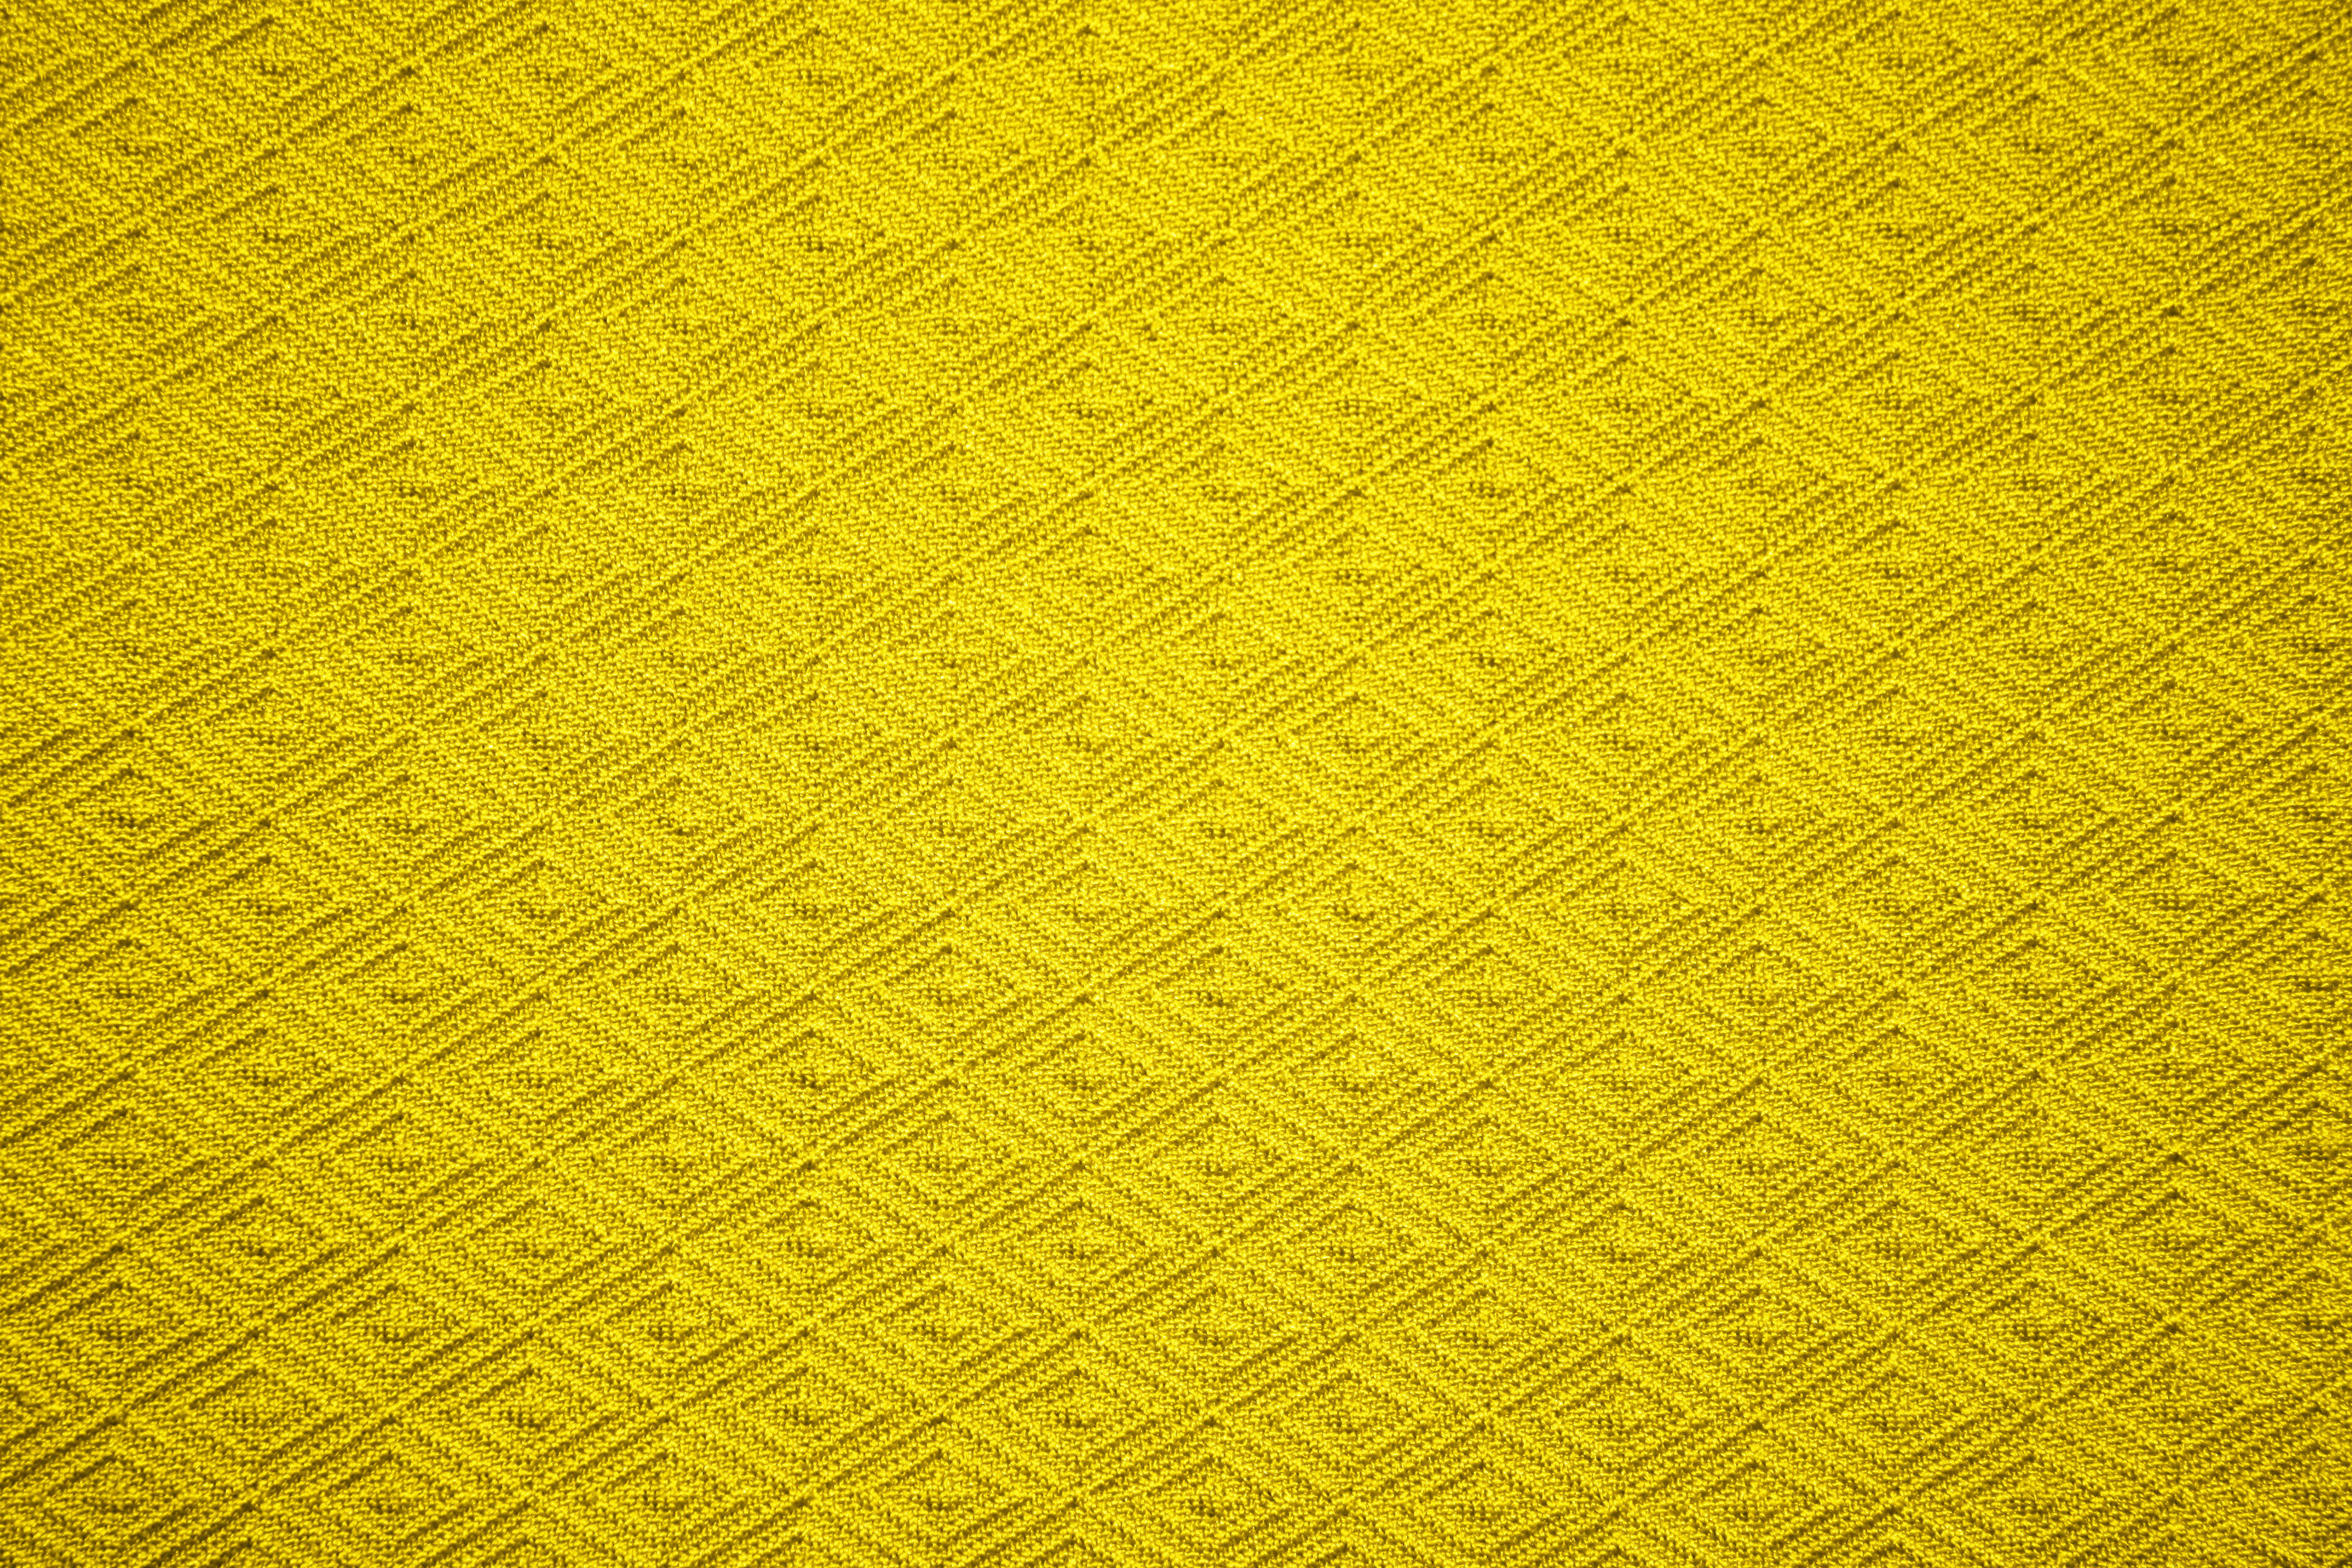 Gold knit fabric with diamond pattern texture picture free gold knit fabric with diamond pattern texture bankloansurffo Choice Image